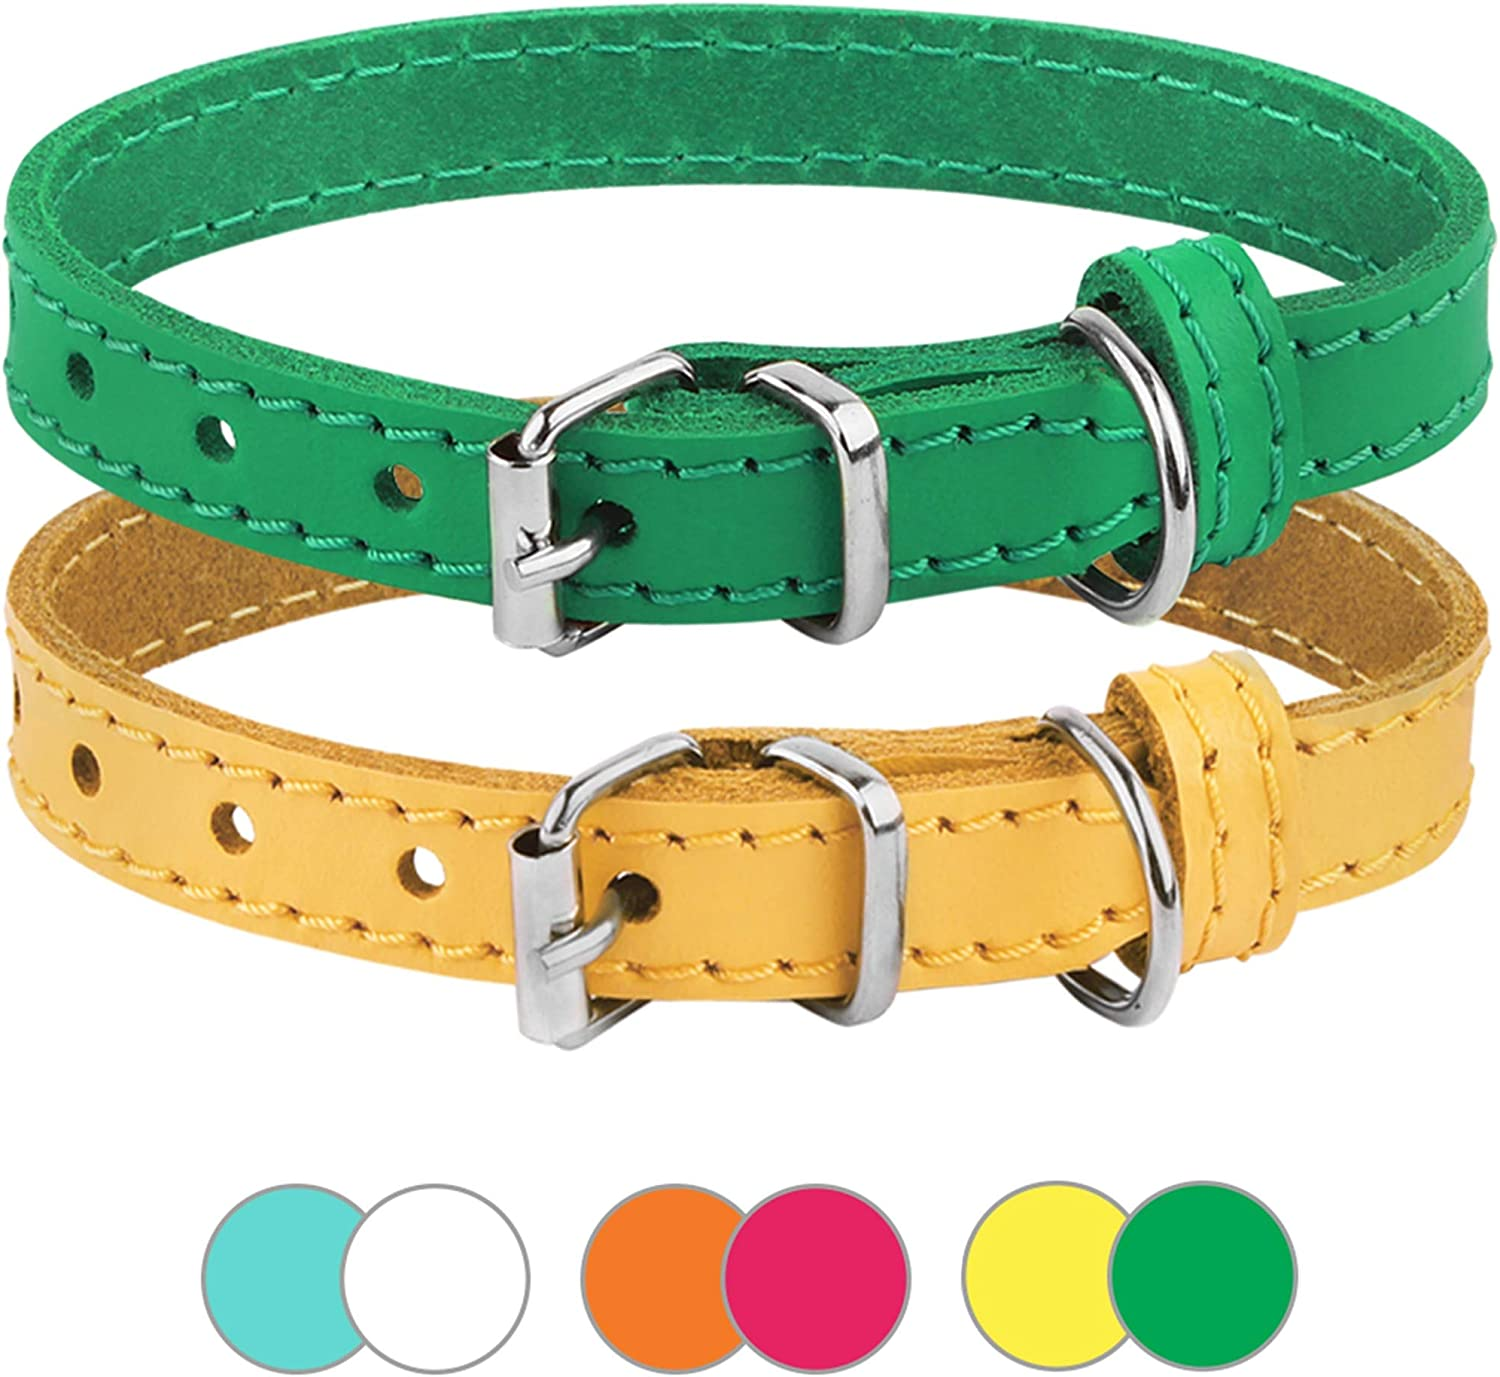 BRONZEDOG Leather Cat Collar Pack of for Kitt PCS Max 74% OFF All items free shipping Pet 2 Collars